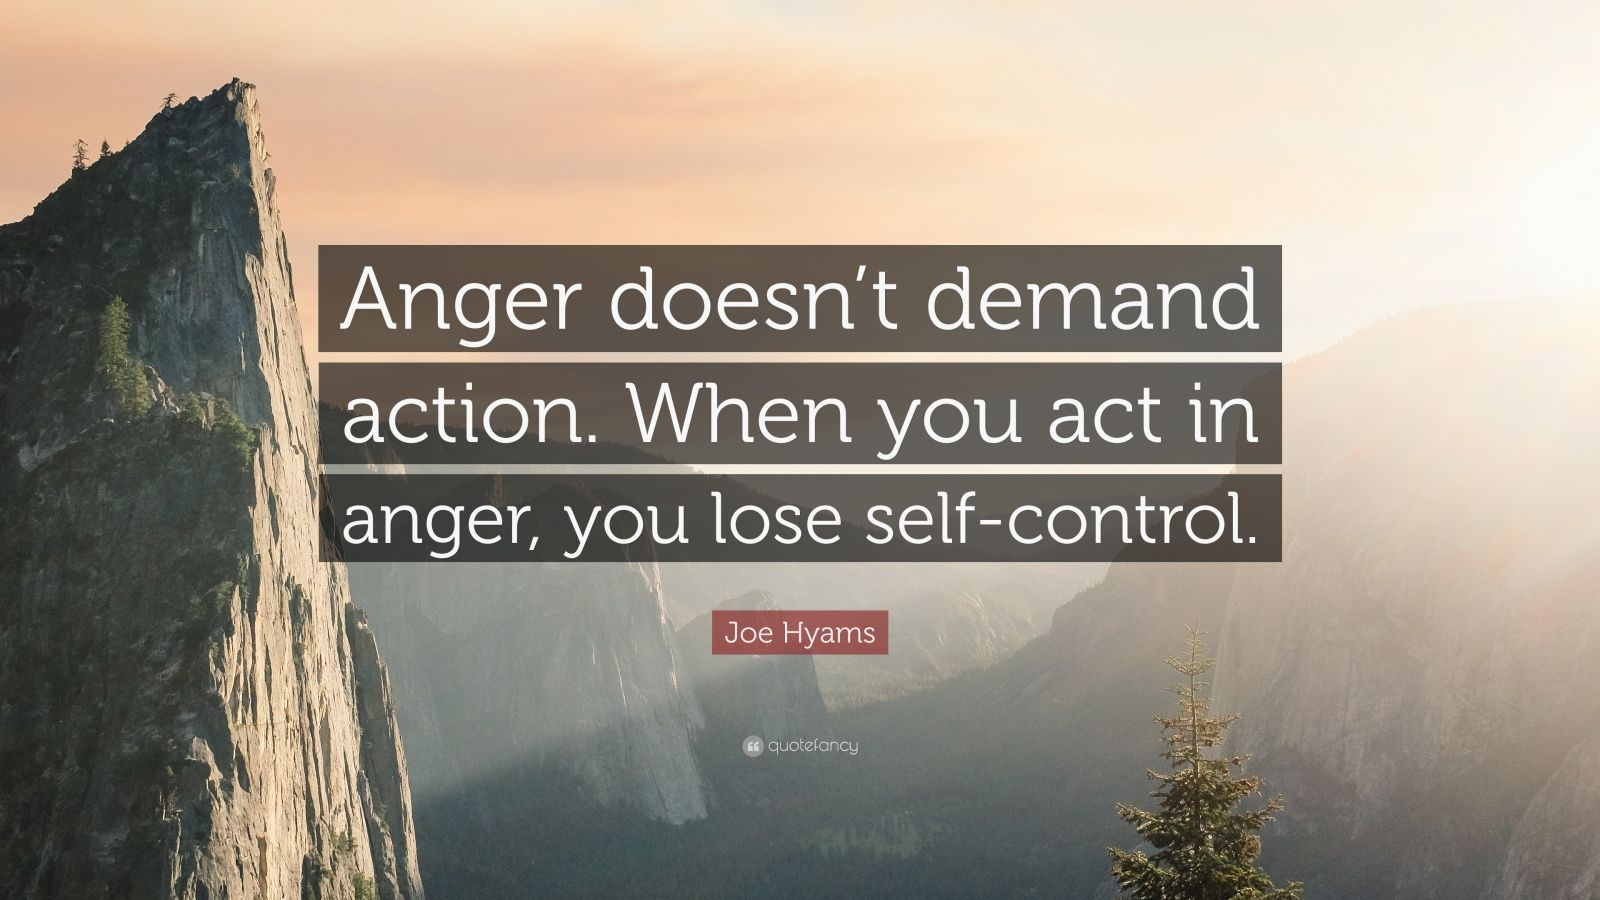 Anger Management Quotes Wallpaper Anger Quotes 40 Wallpapers Quotefancy